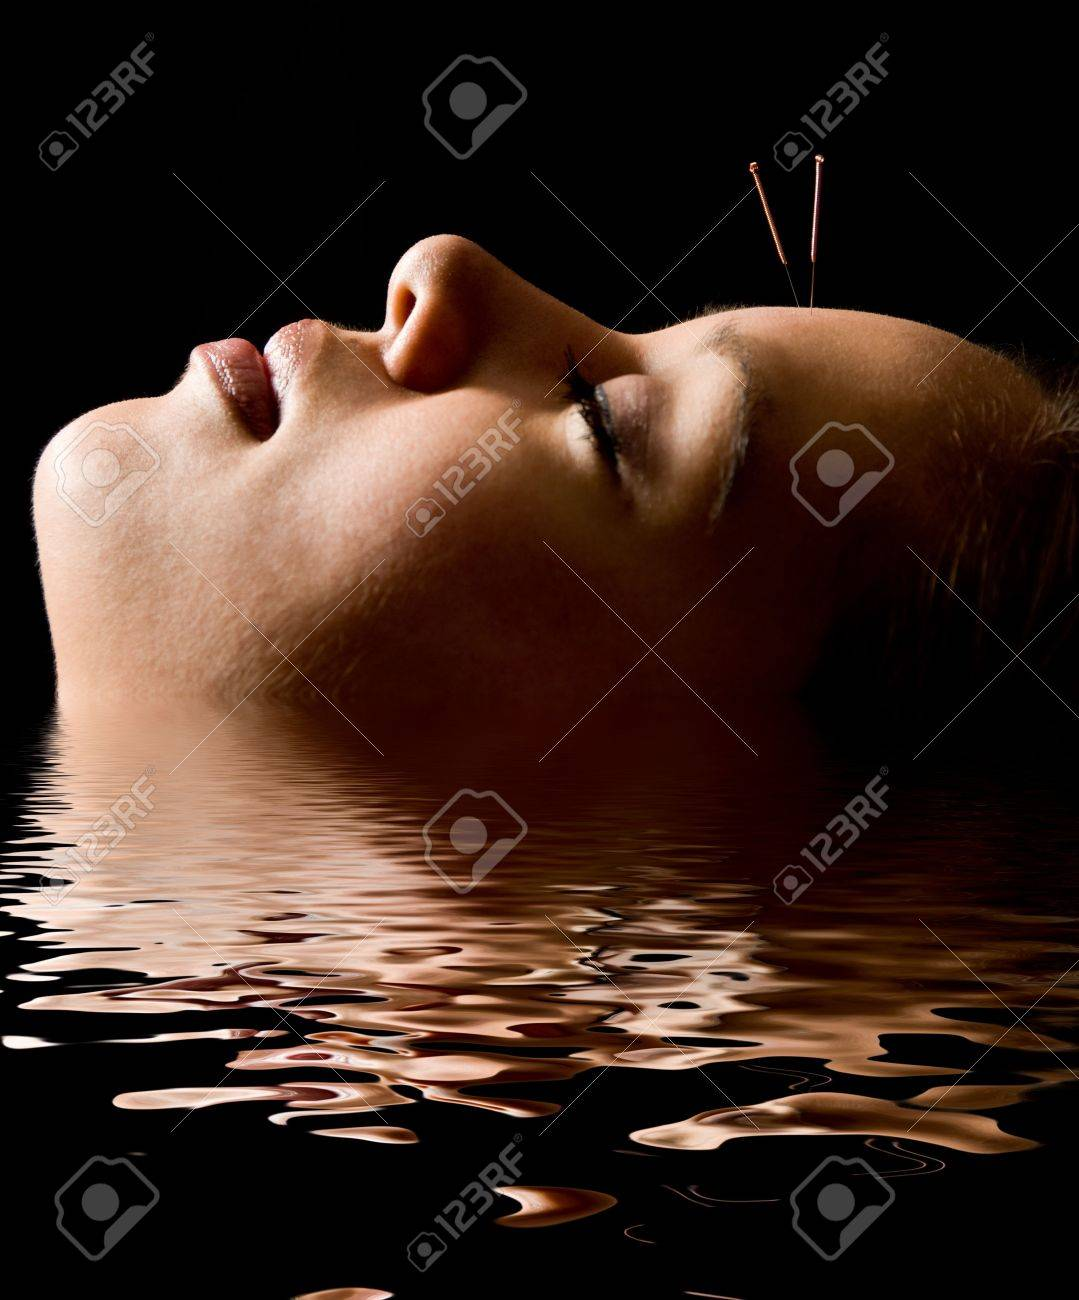 Woman getting an acupuncture treatment in a spa Stock Photo - 3080721